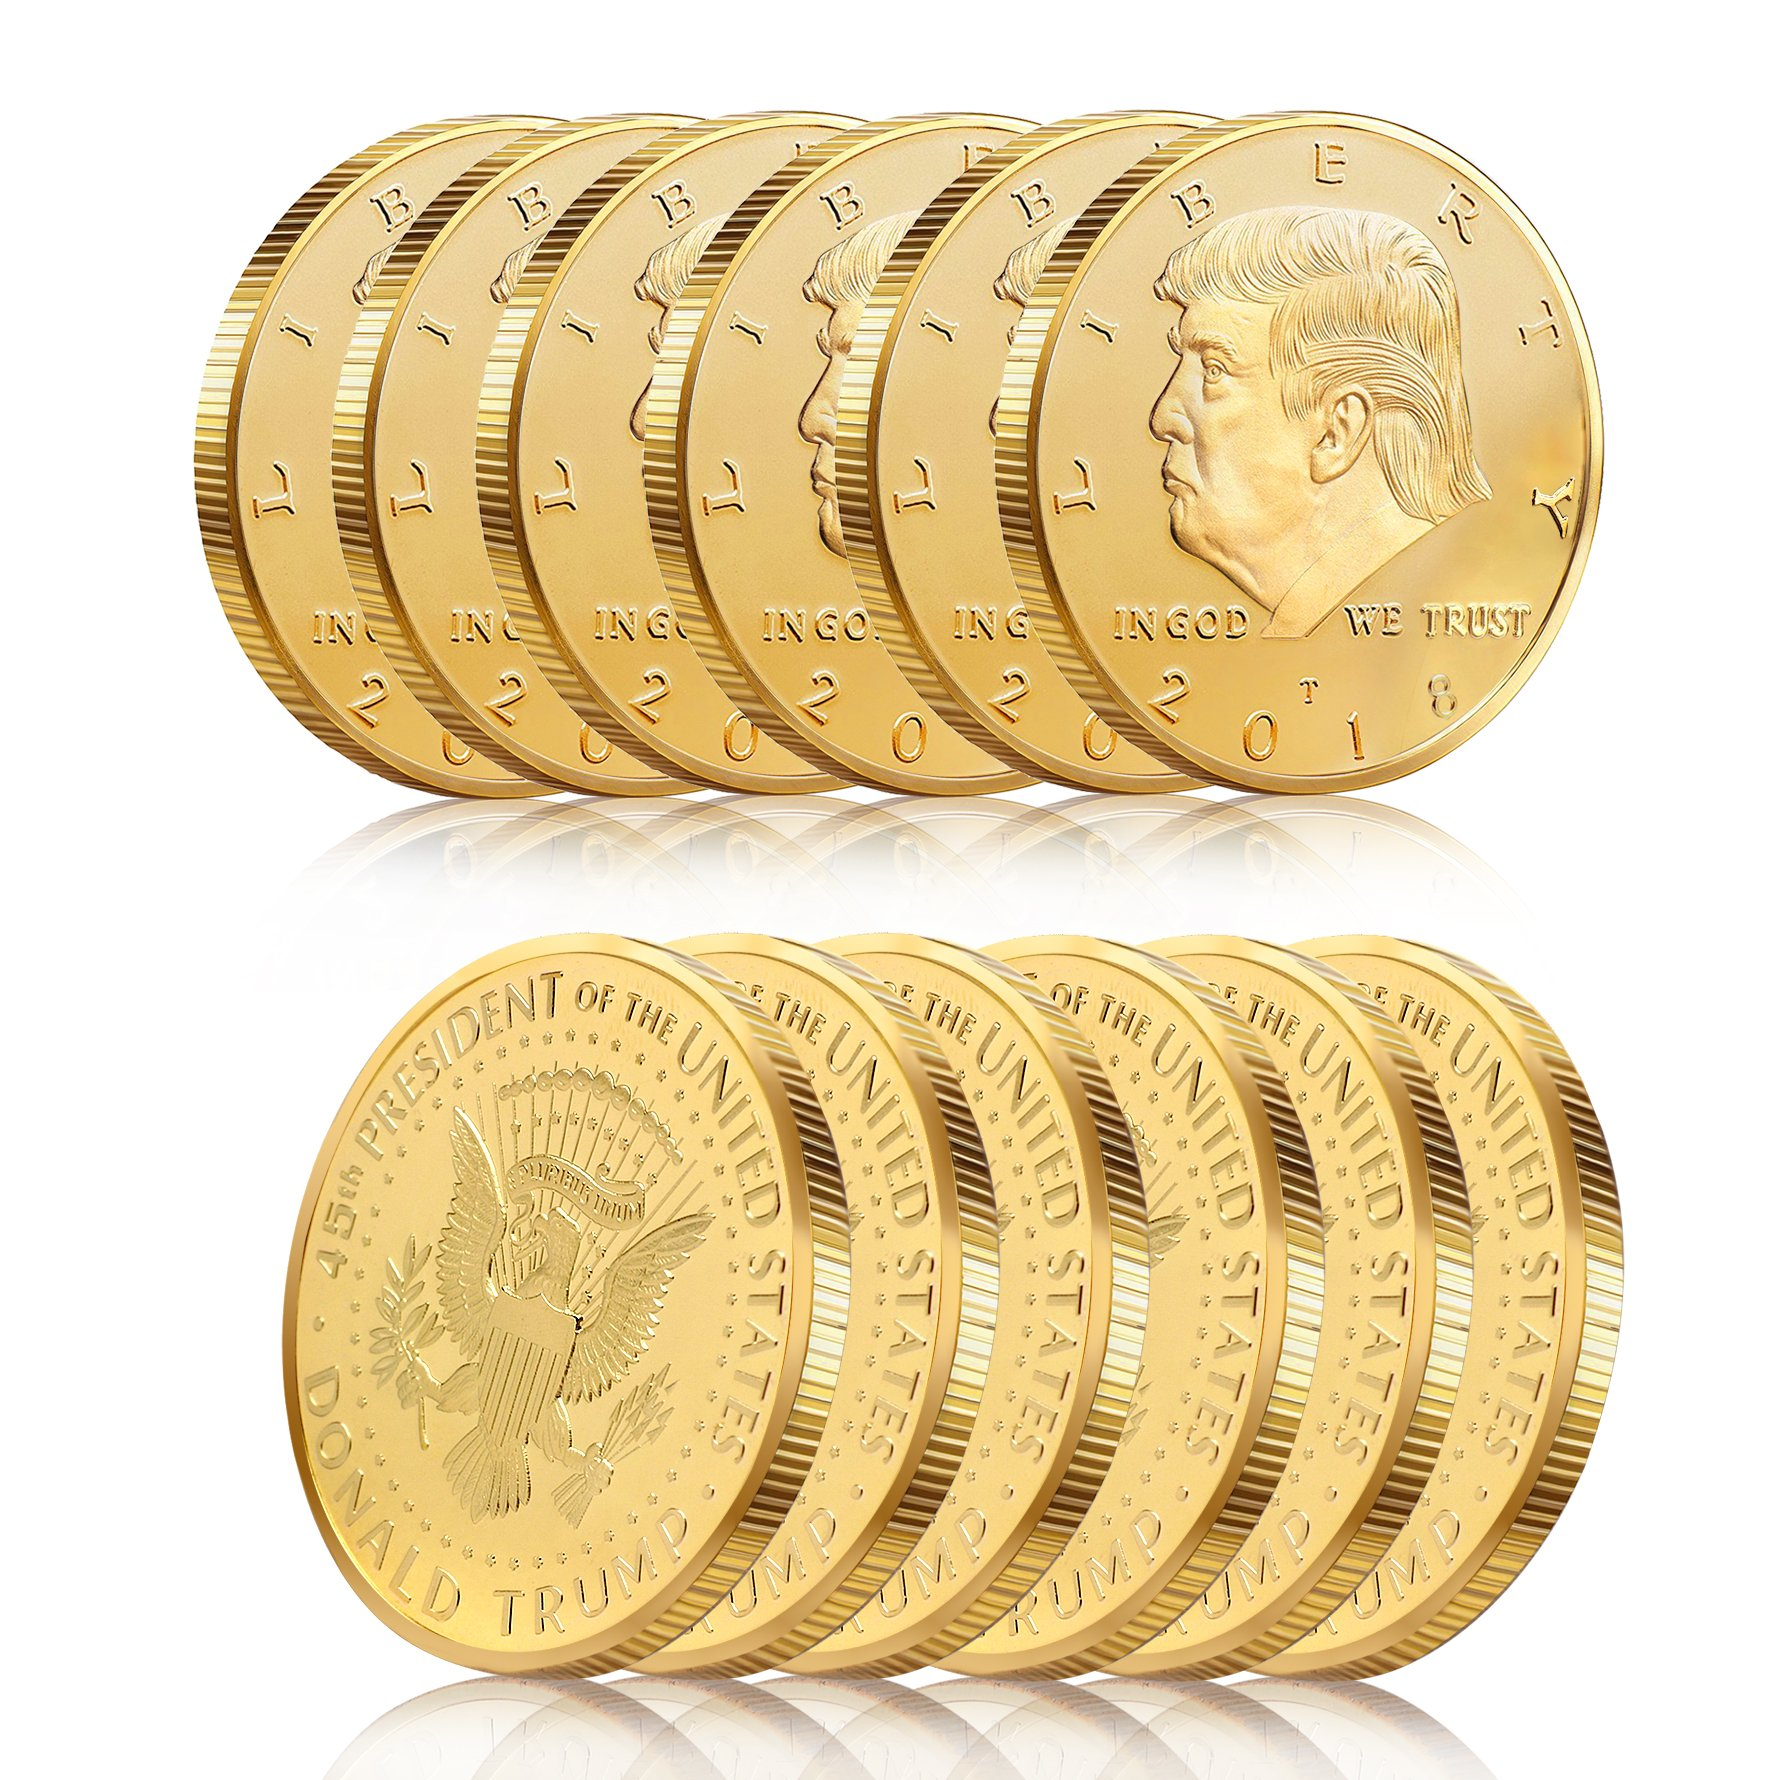 Batterymart 12Pack-Donald Trump Gold Coin 2018 24kt Gold Plated 45th President The United States Original Design